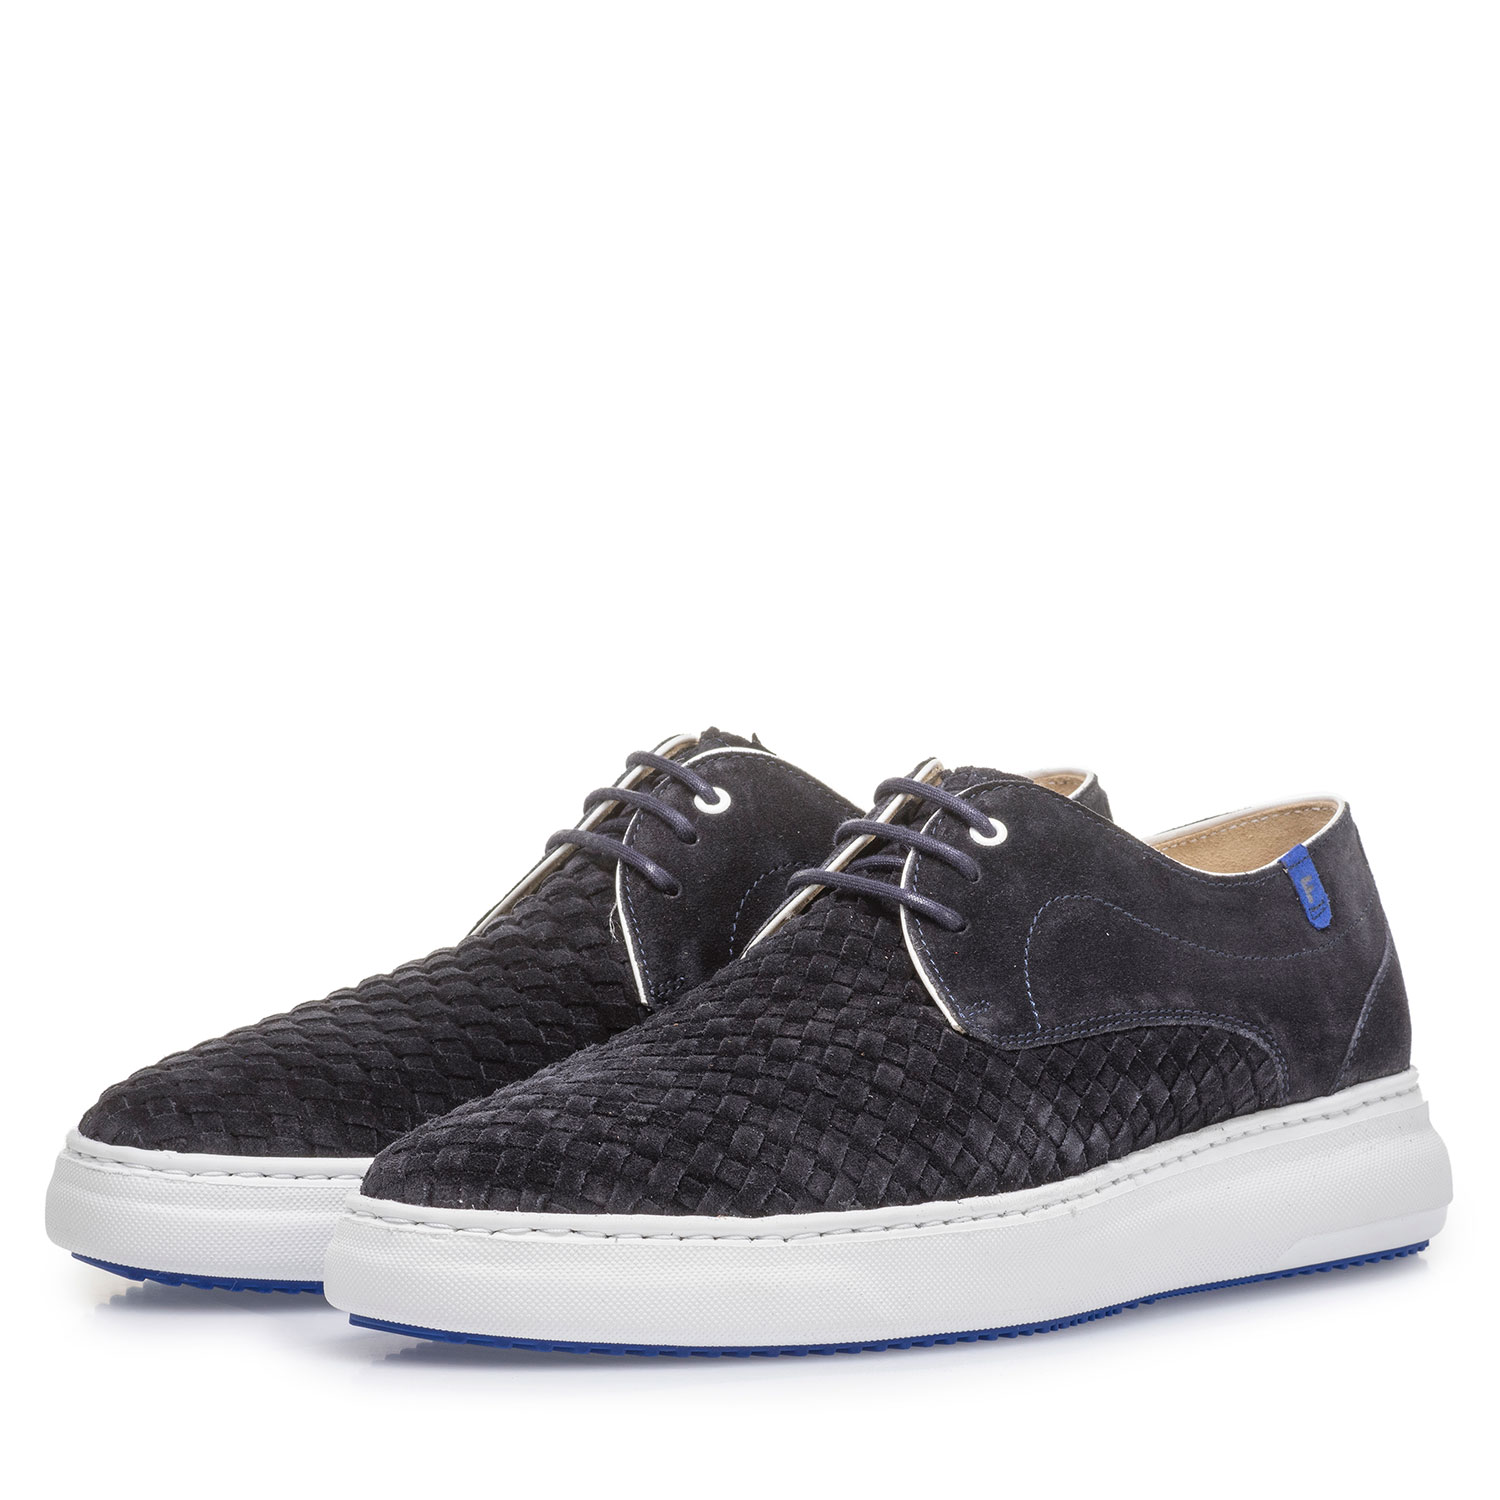 18401/00 - Dark blue lace shoe with braided suede leather